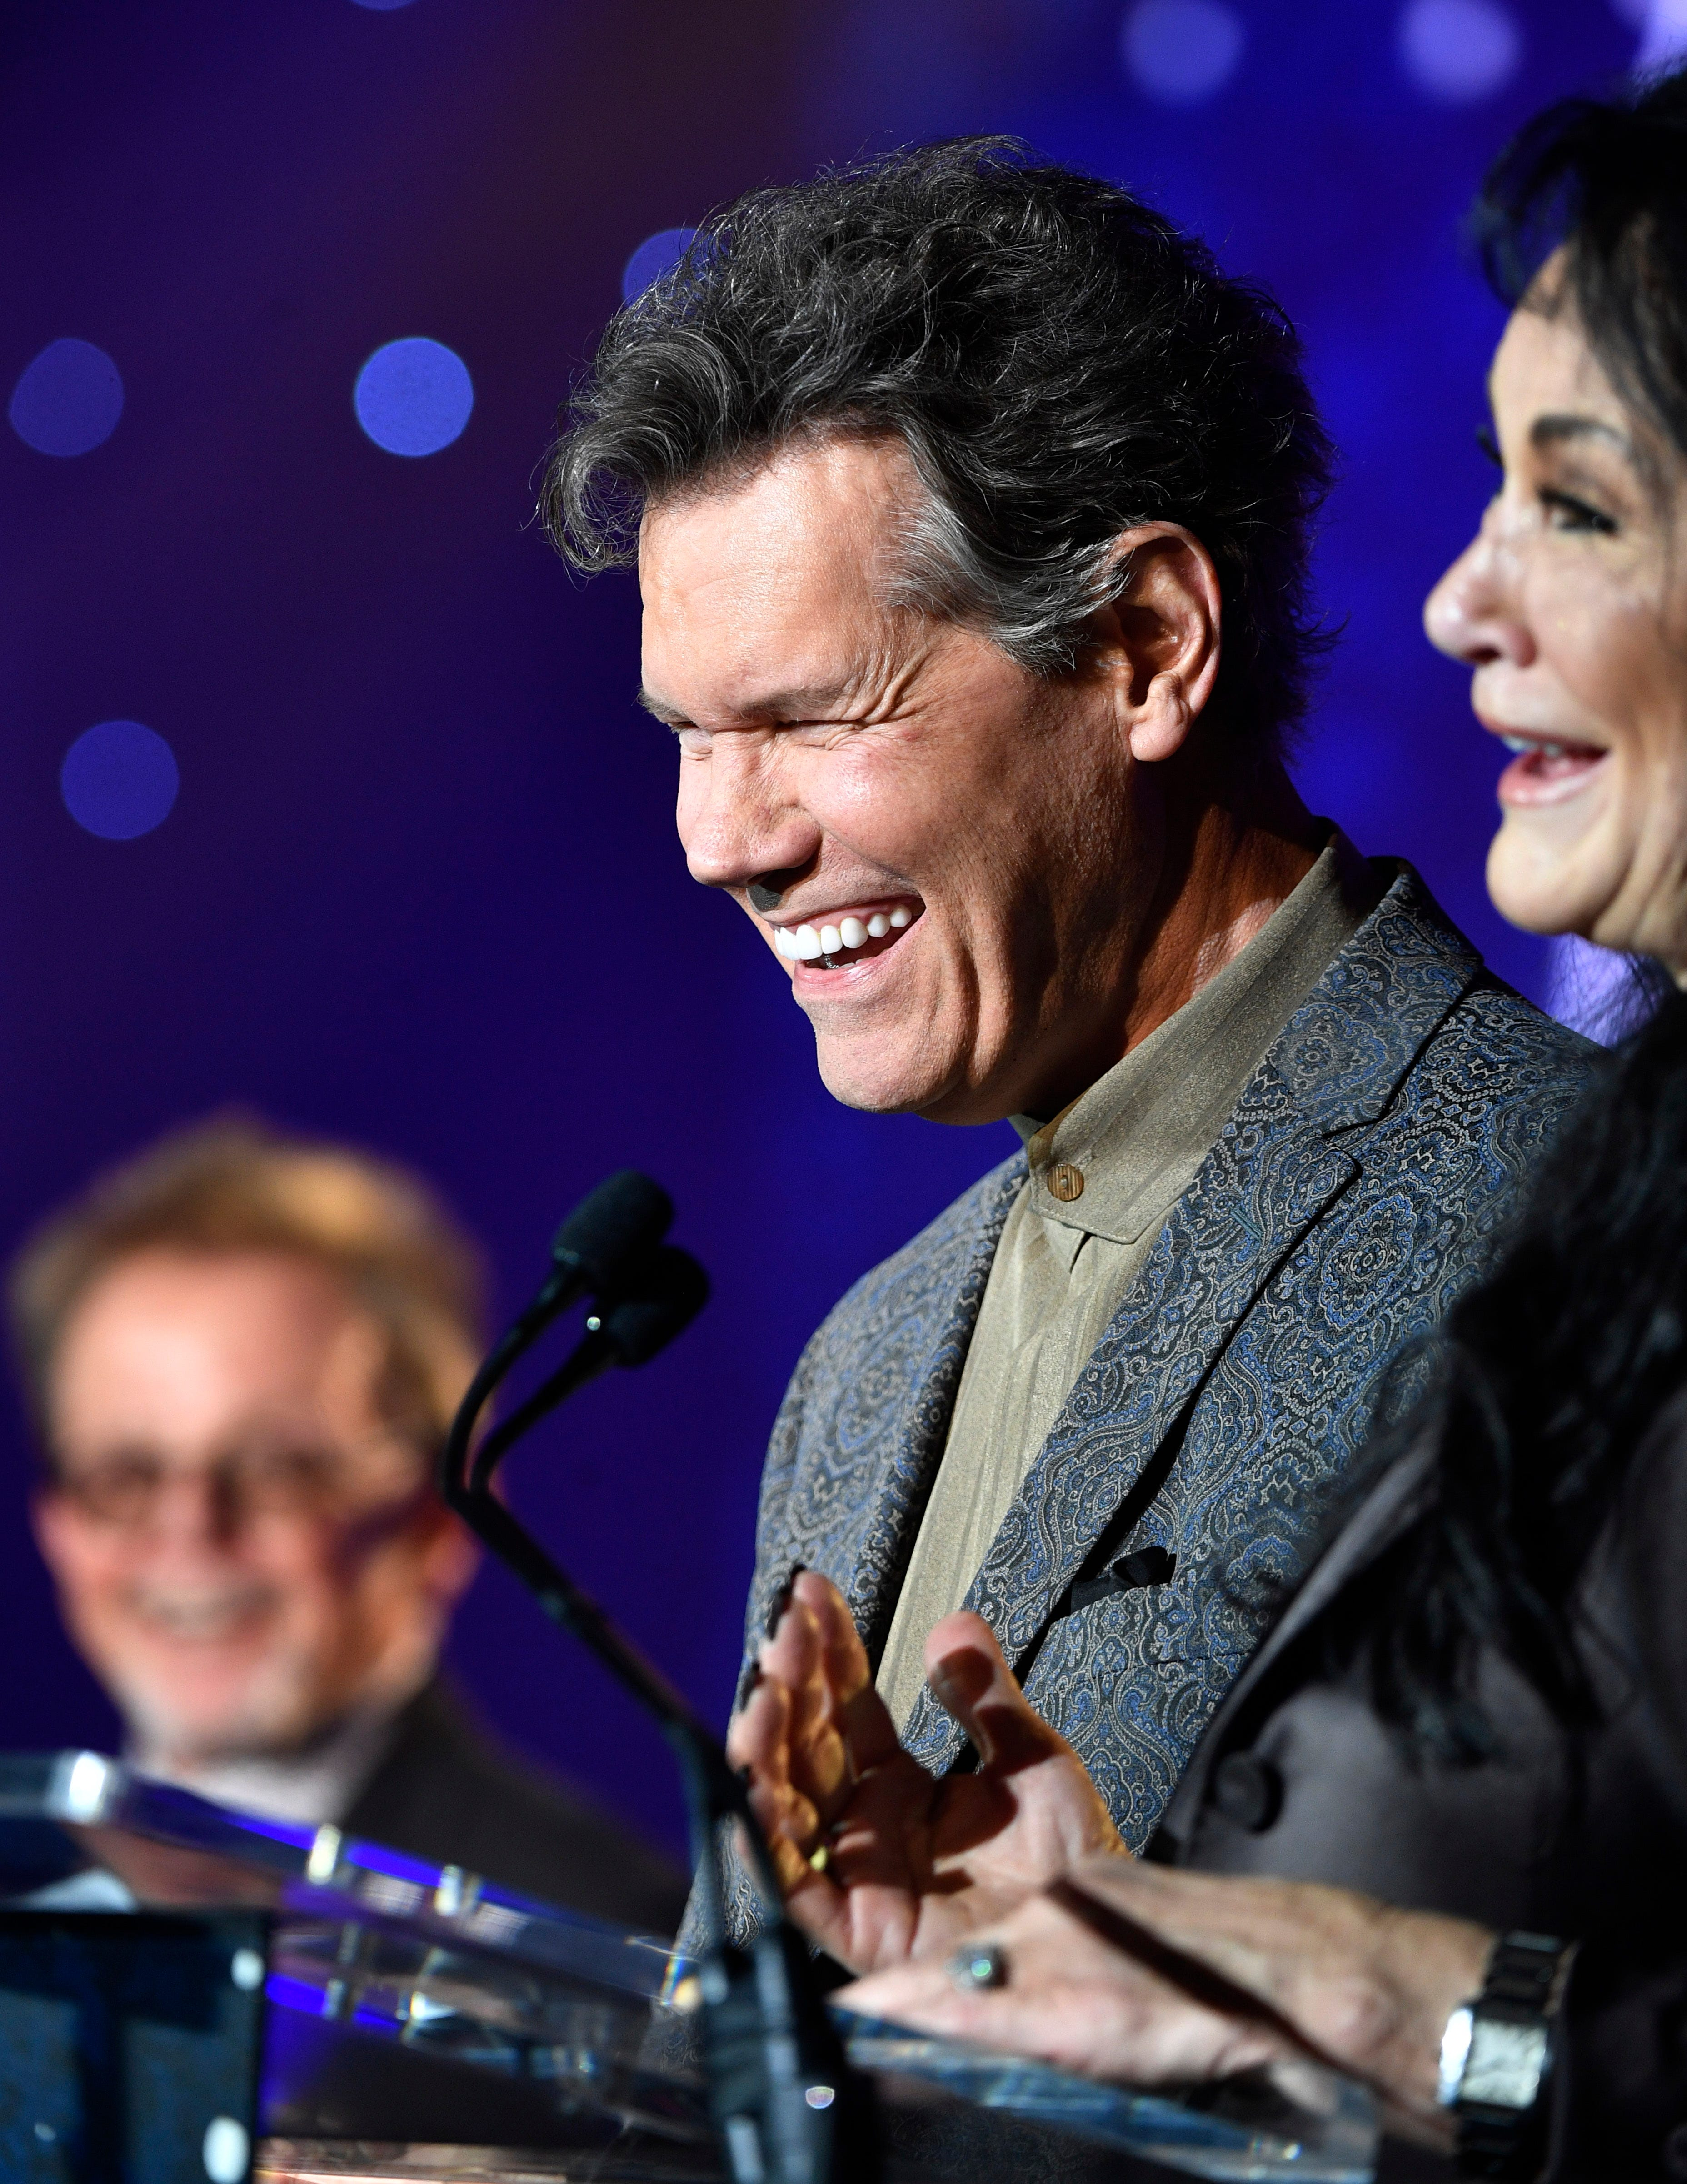 2019 ASCAP Awards: Garth Brooks and Carrie Underwood surprise and honor Randy Travis - Tennessean